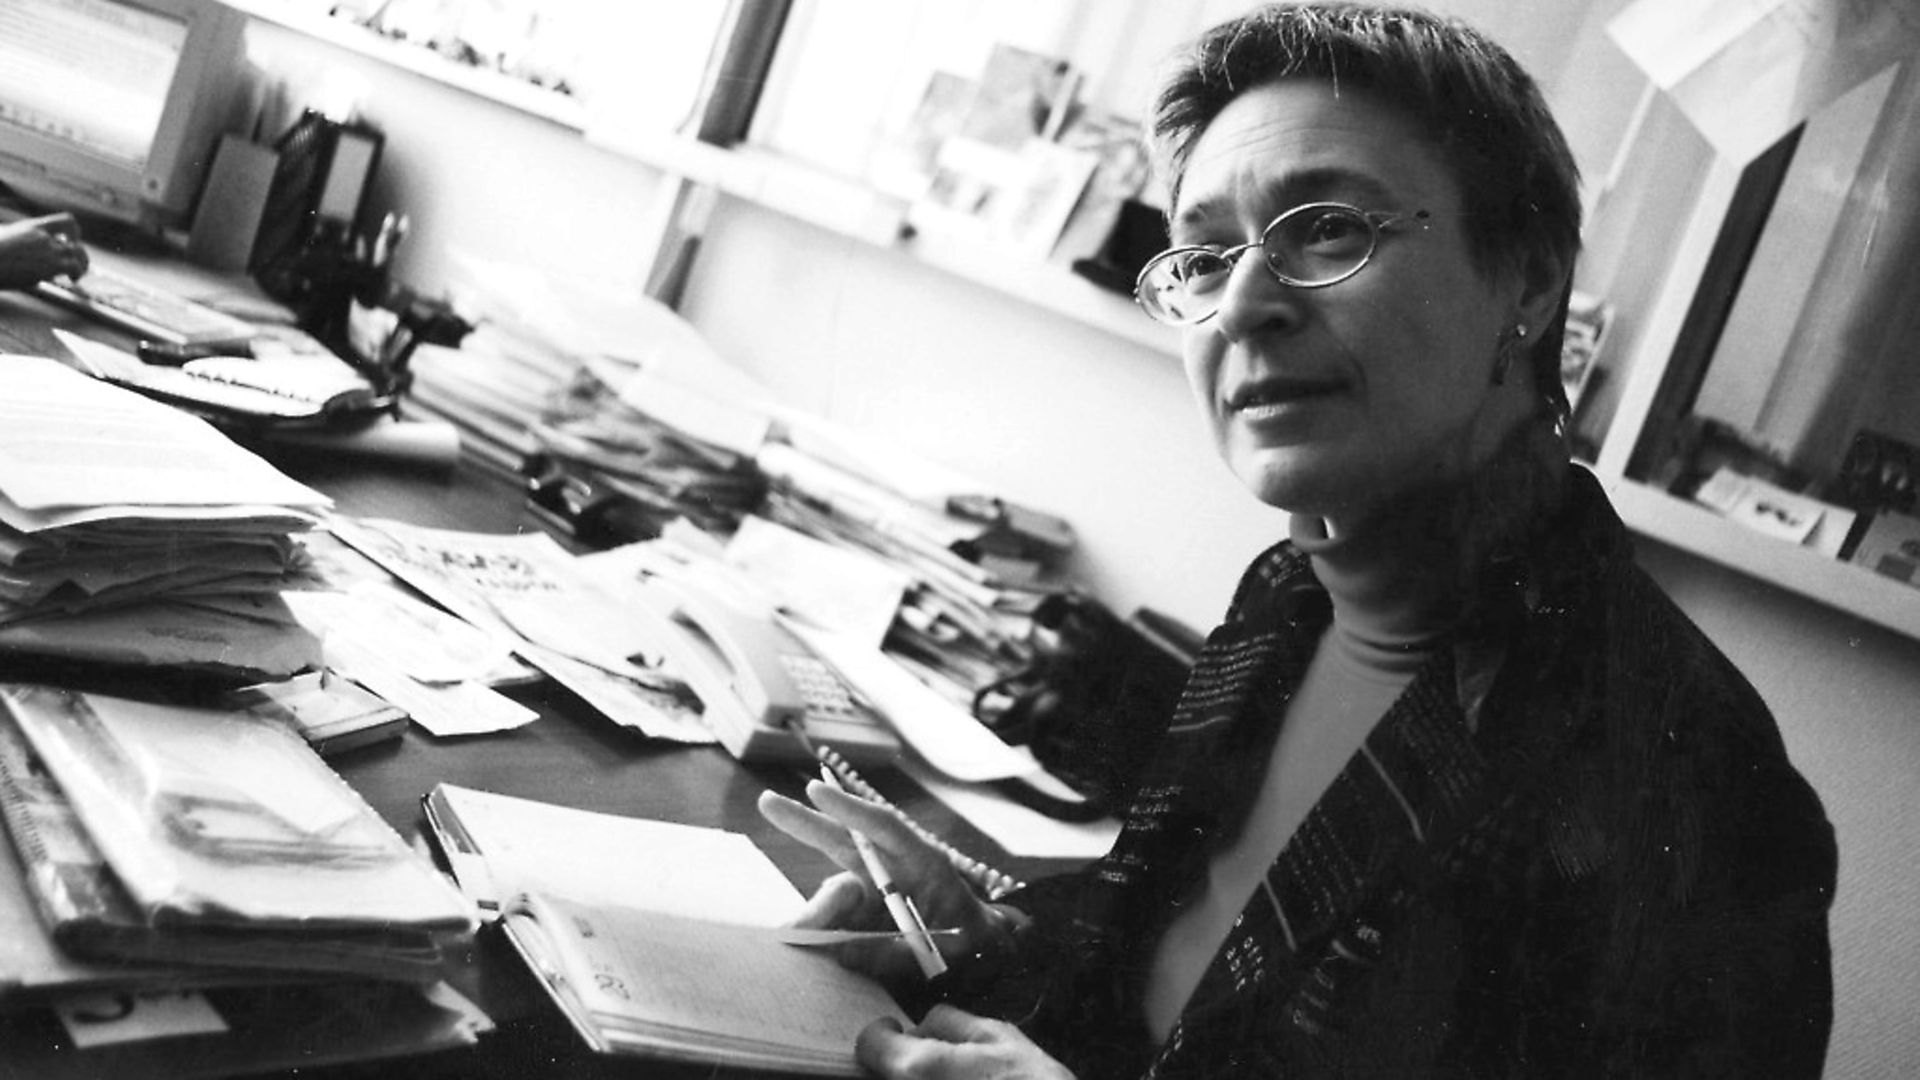 In this undated file photo, independent Russian journalist Anna Politkovskaya, a highly respected and tireless investigative reporter and author is pictured at work. (Photo by Novaya Gazeta/Epsilon/Getty Images) - Credit: Getty Images